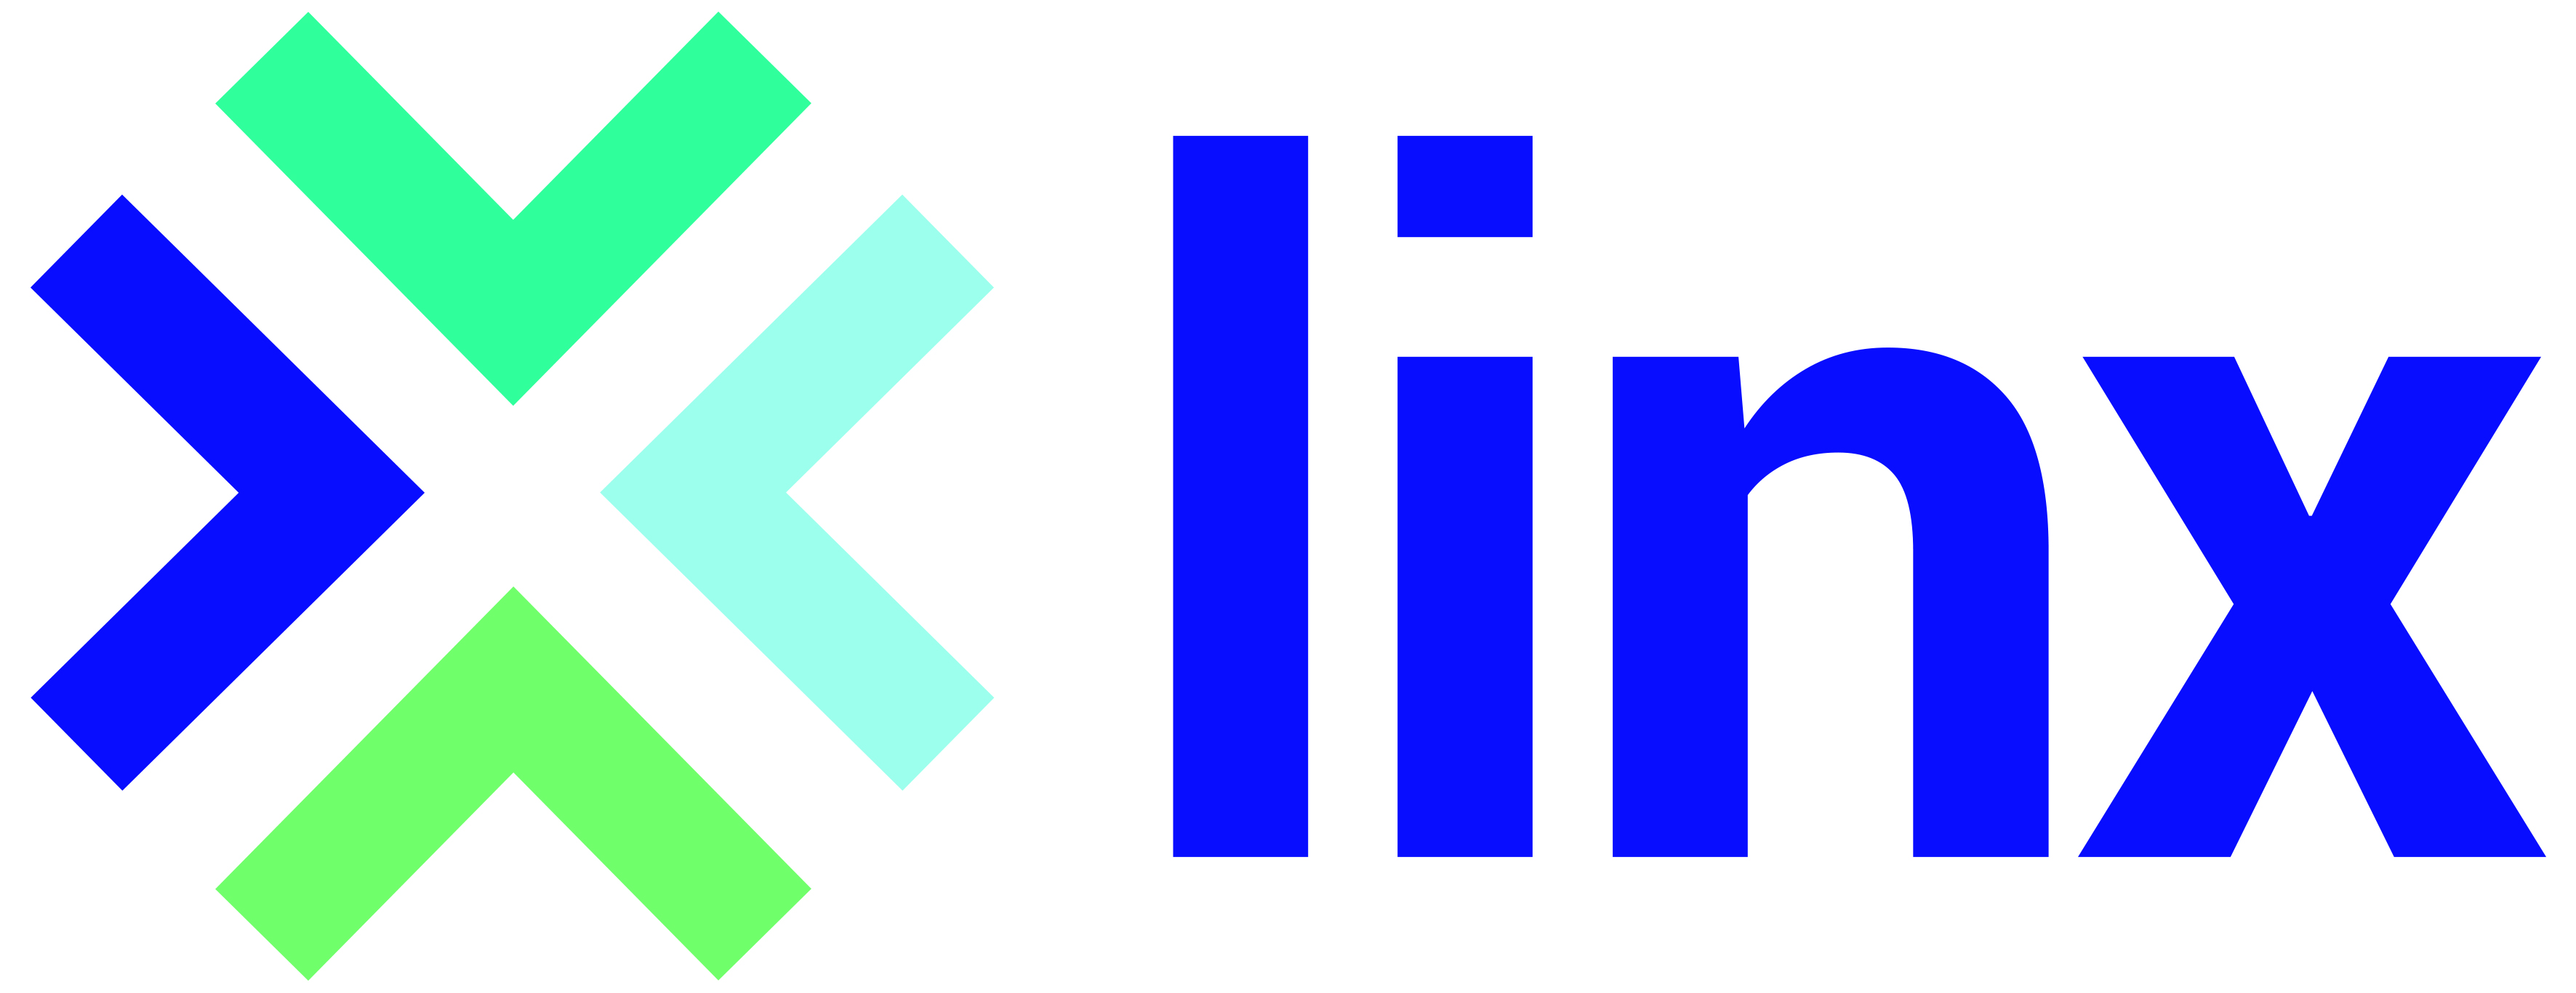 London internet exchange (LINX)